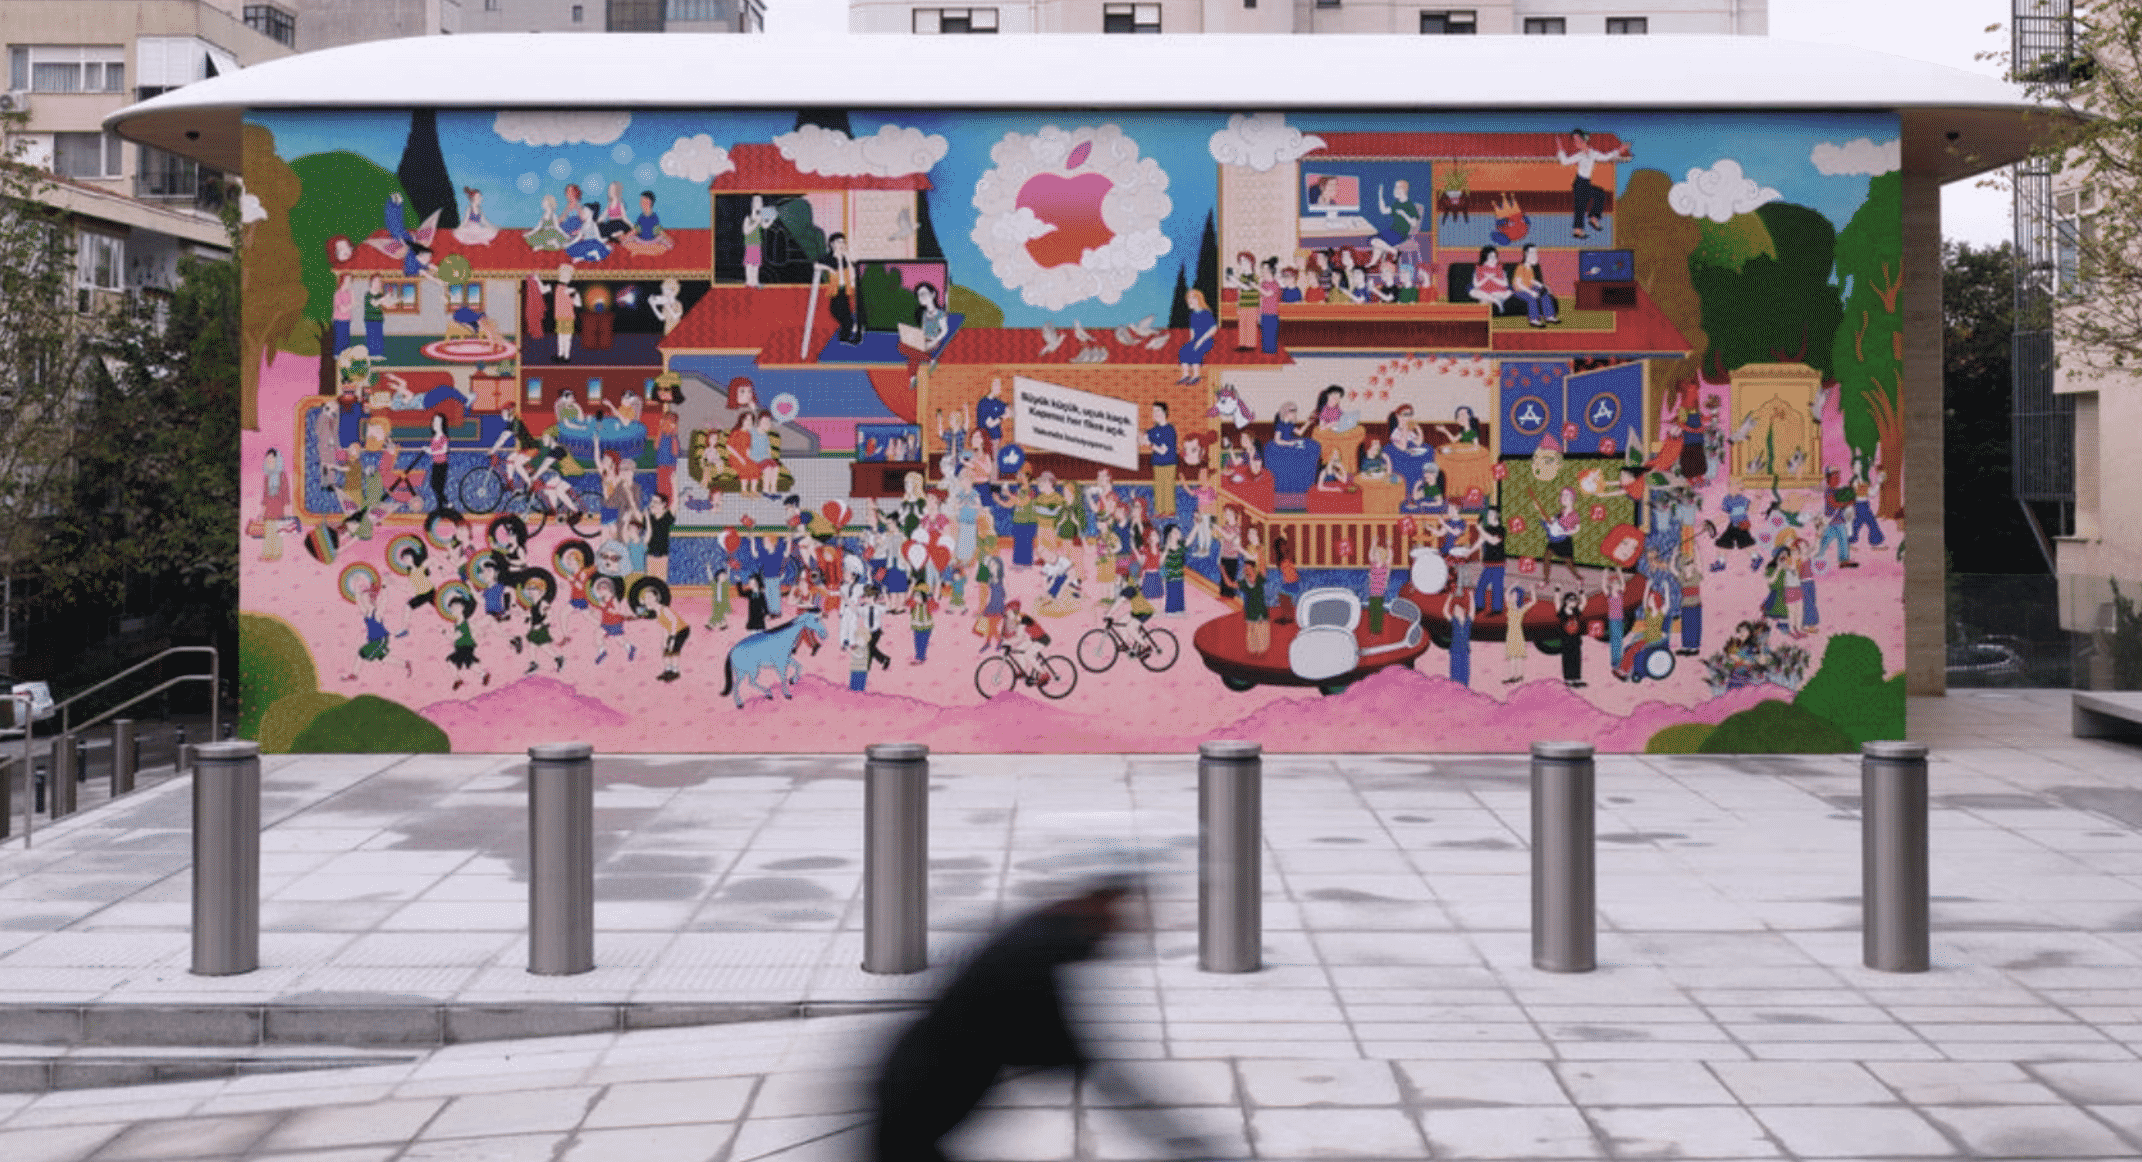 Apple highlights third Apple Store in Turkey with giant mural